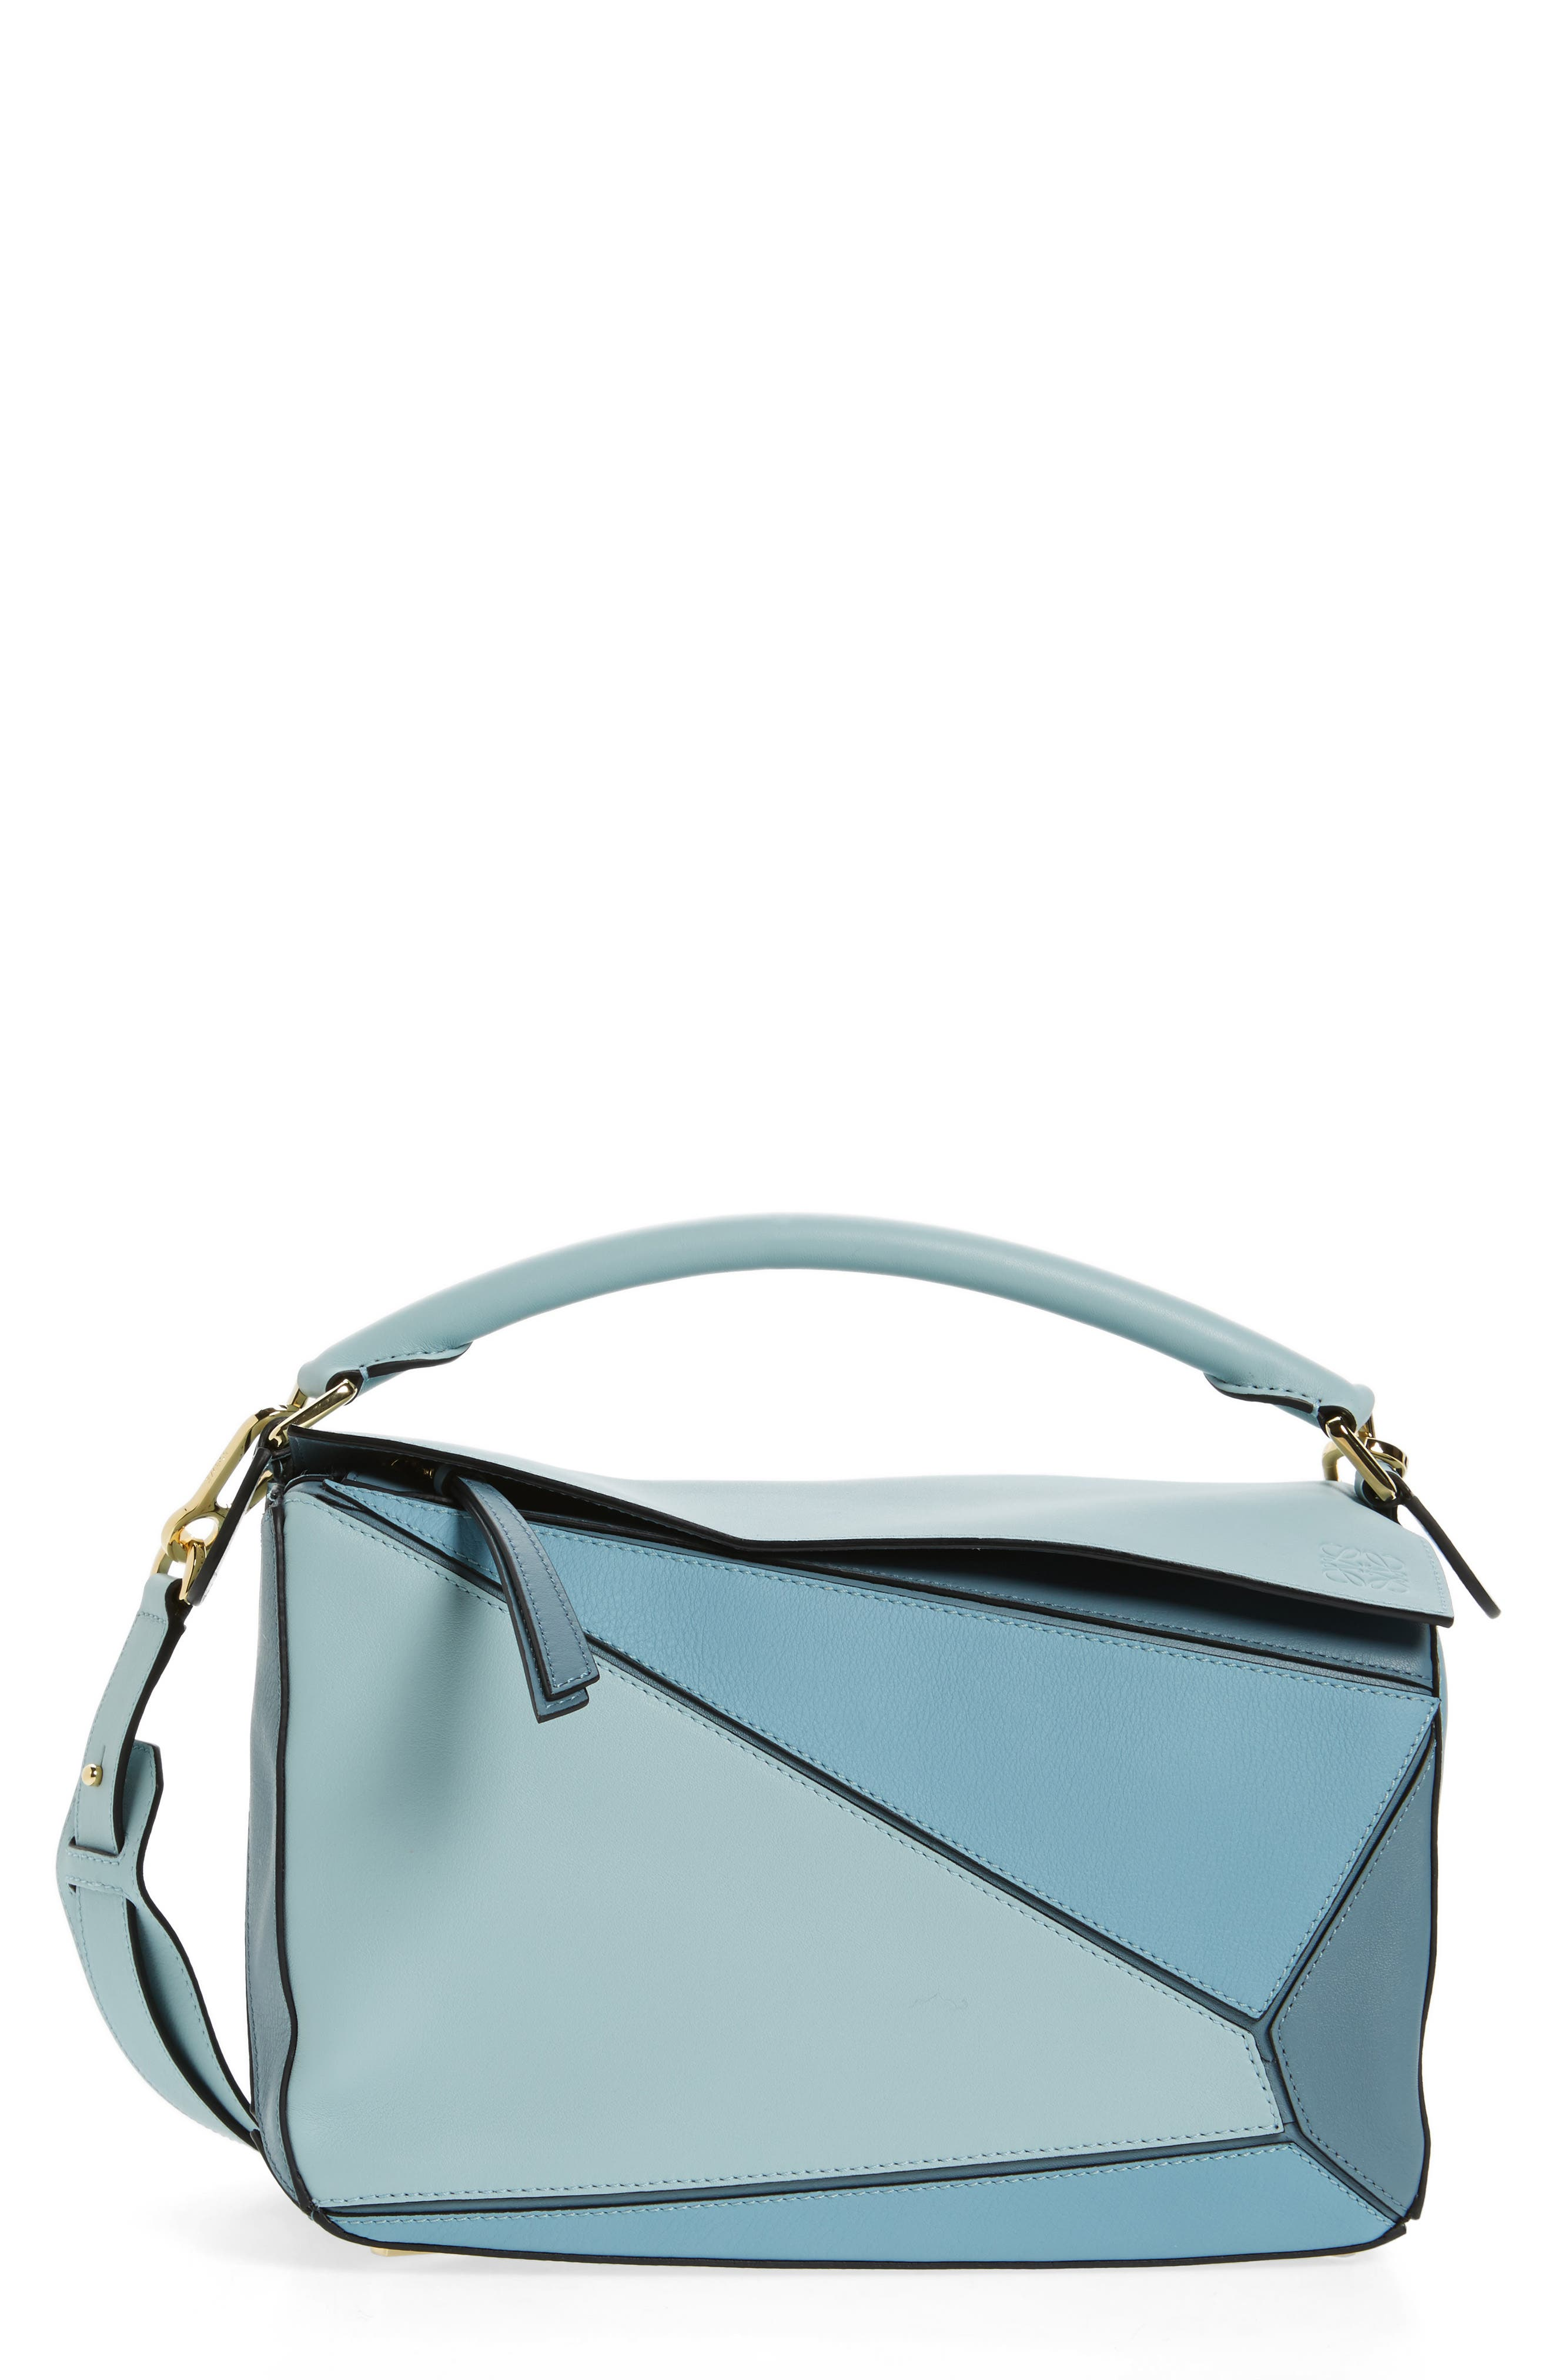 Loewe 'Puzzle' Colorblock Calfskin Leather Bag